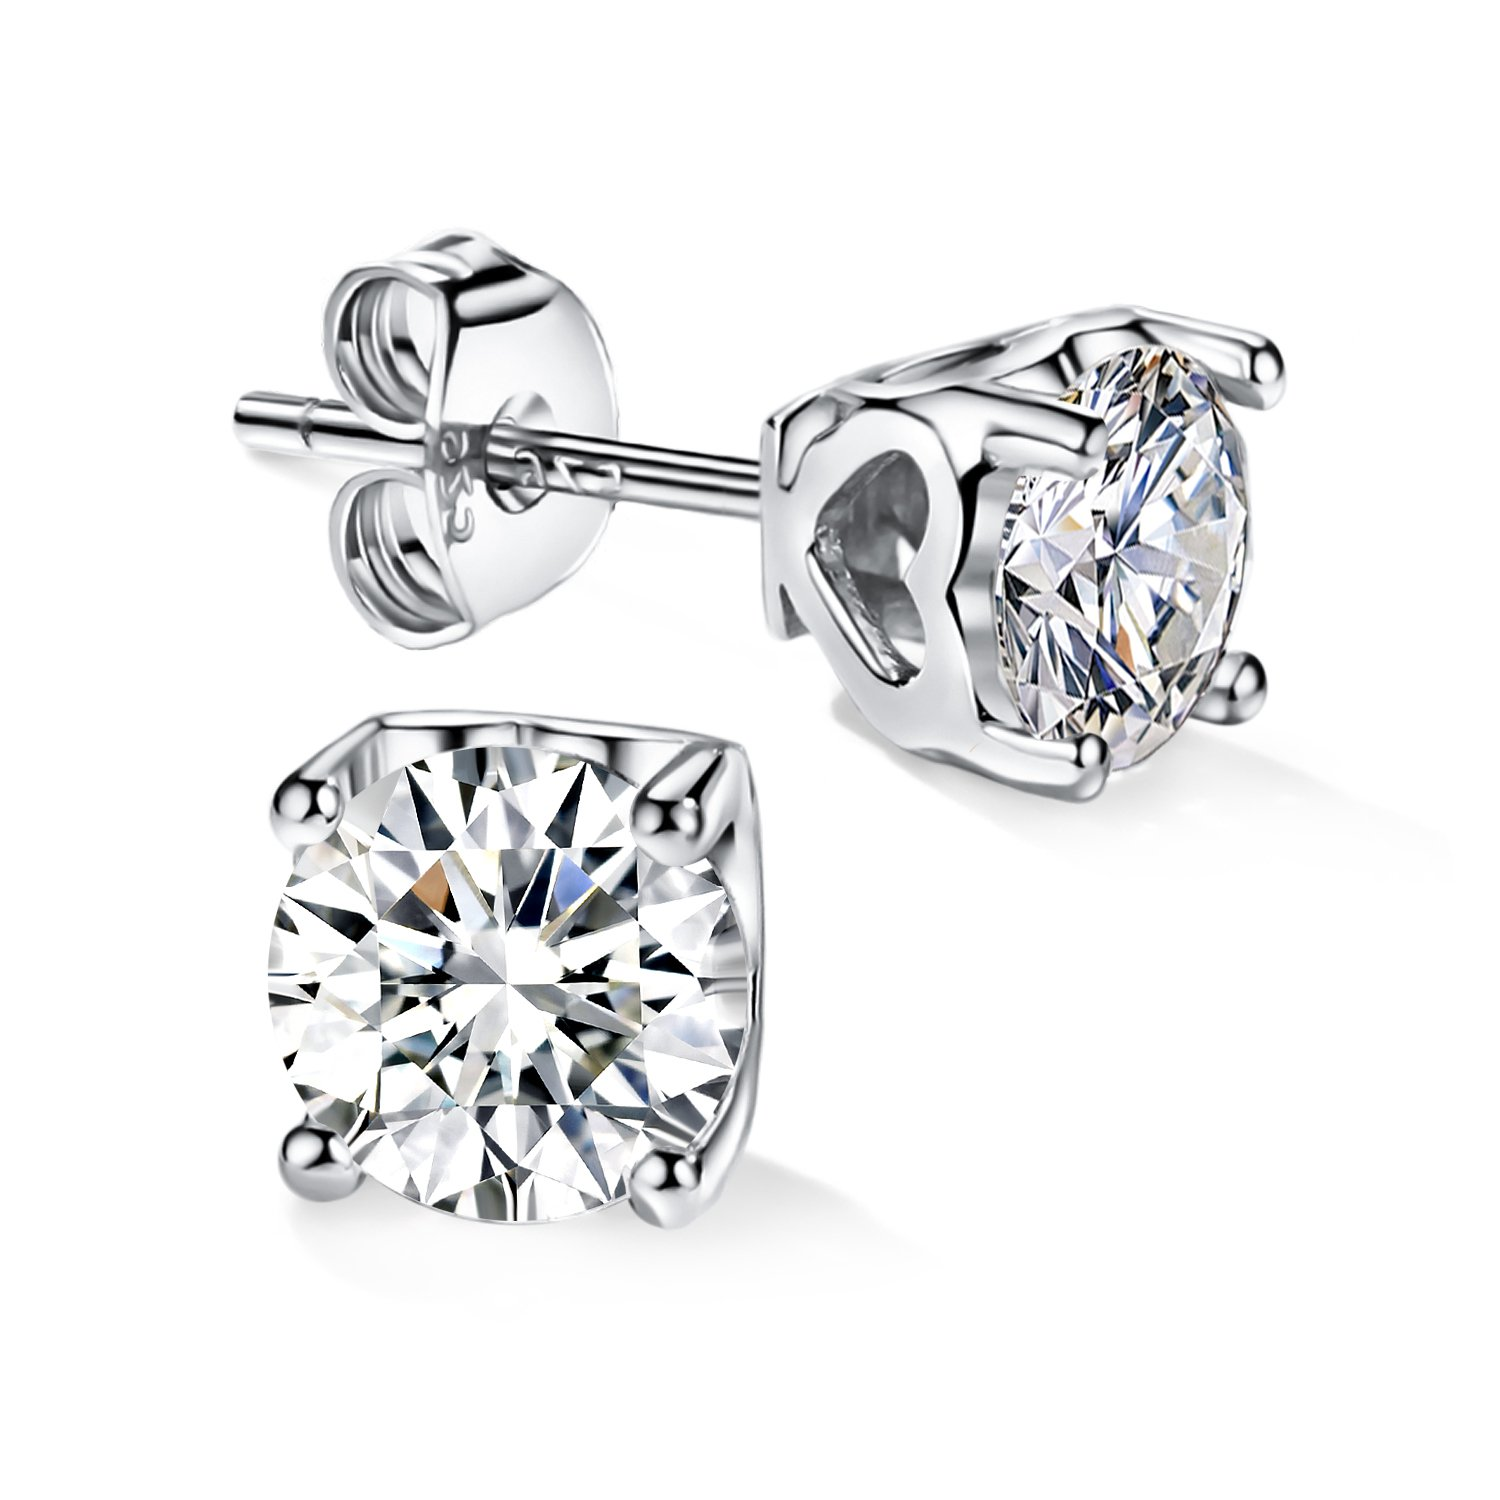 14K Gold Plating Sterling Silver Round Cut CZ Stud Earrings